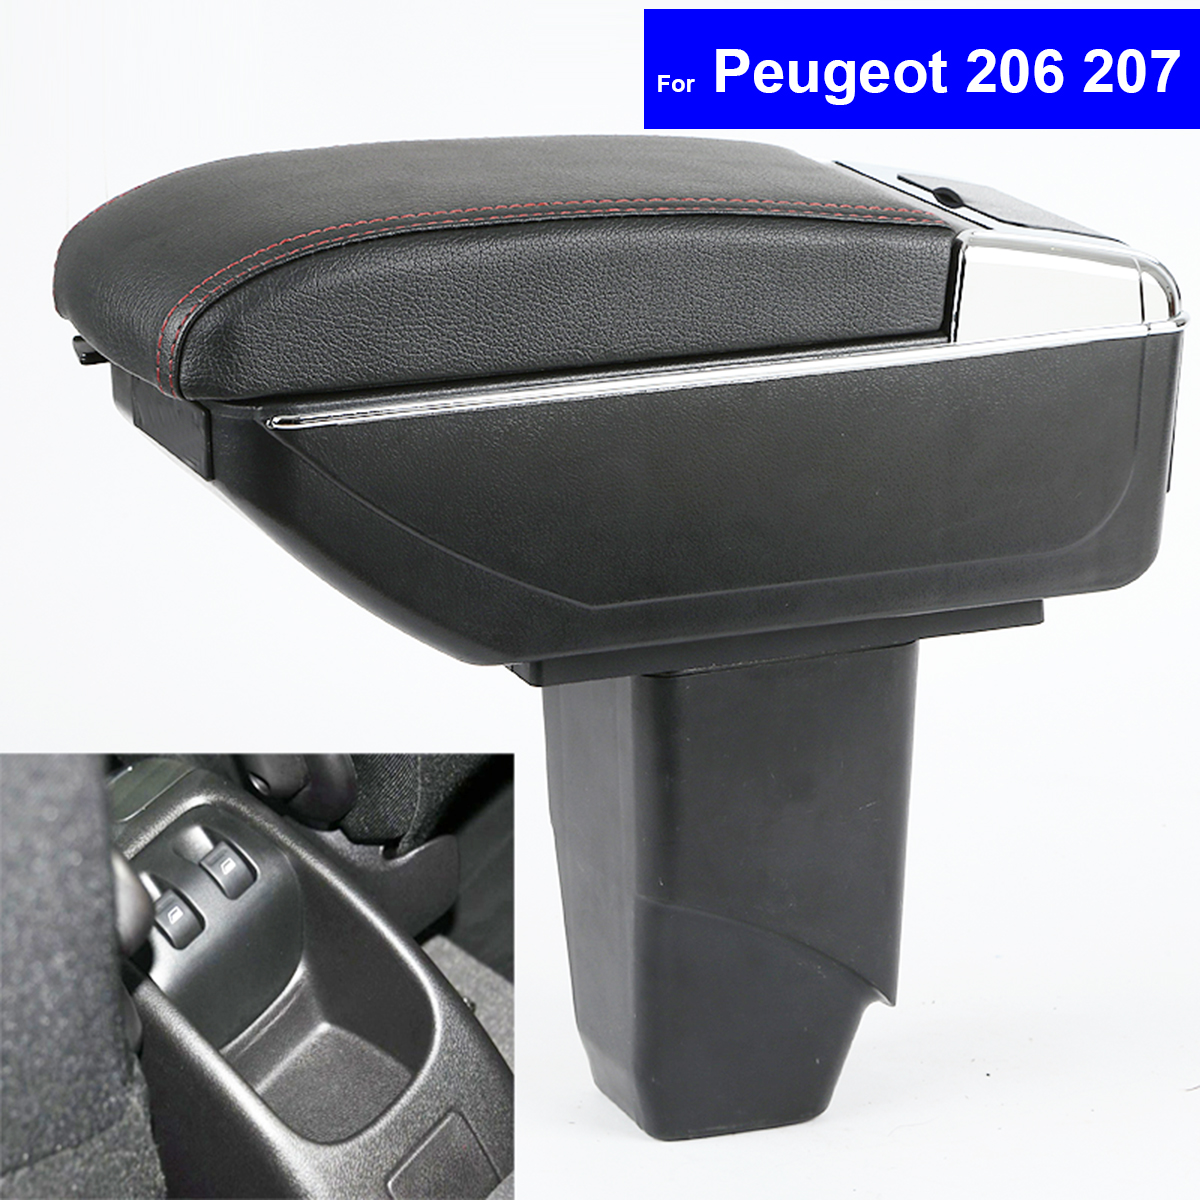 Leather Center Console Armrest Storage Box for Peugeot 206 2005~2008 / Peugeot 207 2008 2009 2010 ~2013 Armrests Free Shipping universal leather car armrest central store content storage box with cup holder center console armrests free shipping